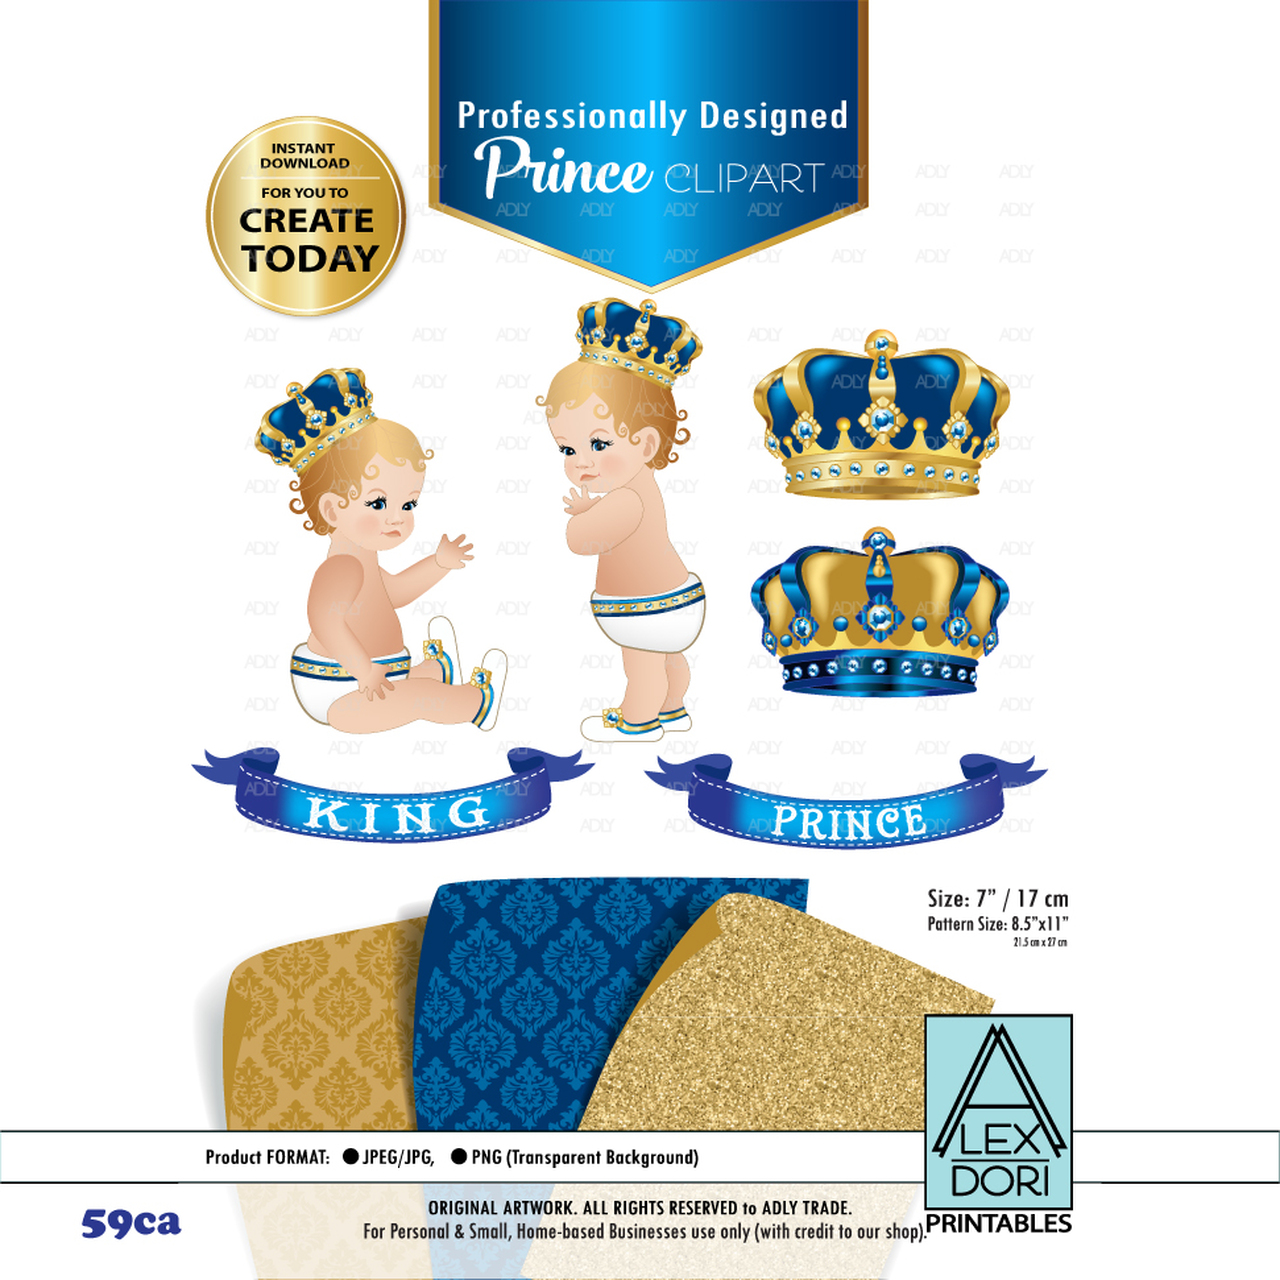 Royal Prince King Royal Digital Clipart Blue And Gold Baby Clipart Crown Scrapbook Clip Art Royal Crowns Royal Baby Shower Adly Invitations And Digital Party Designs